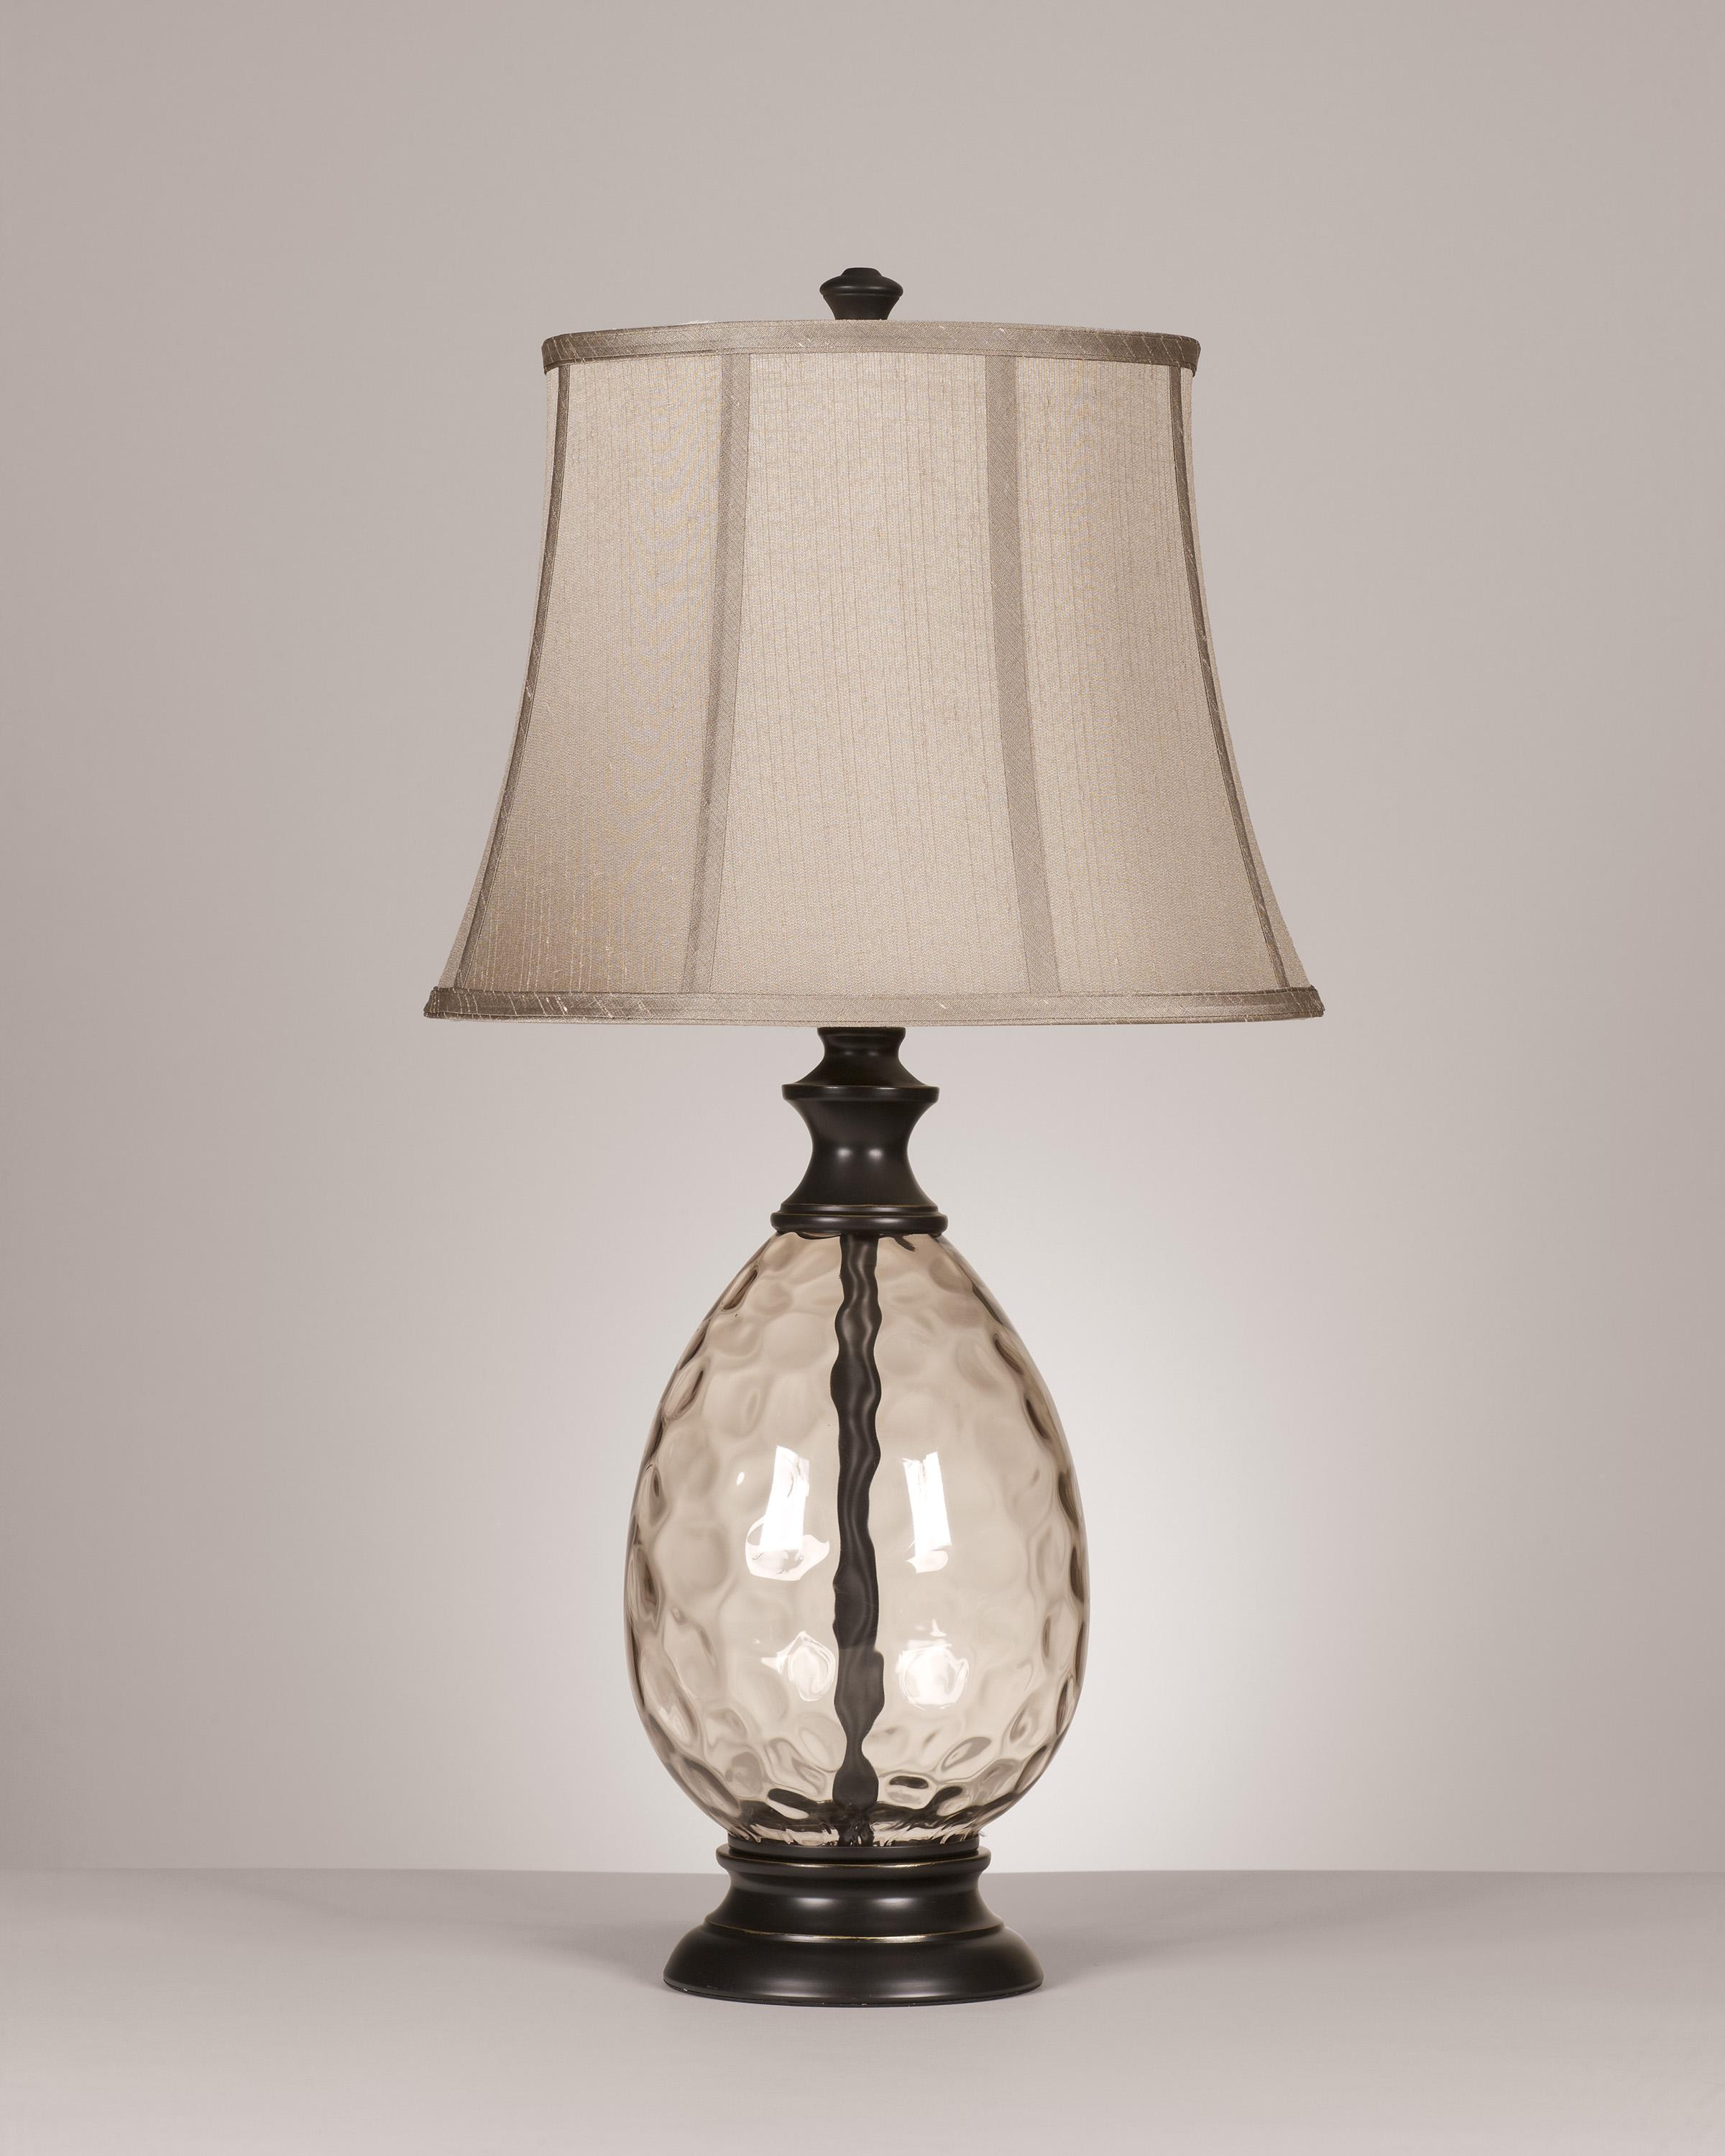 Signature Design by Ashley Lamps - Traditional Classics Set of 2 Olivia Glass Table Lamps - Item Number: L440234